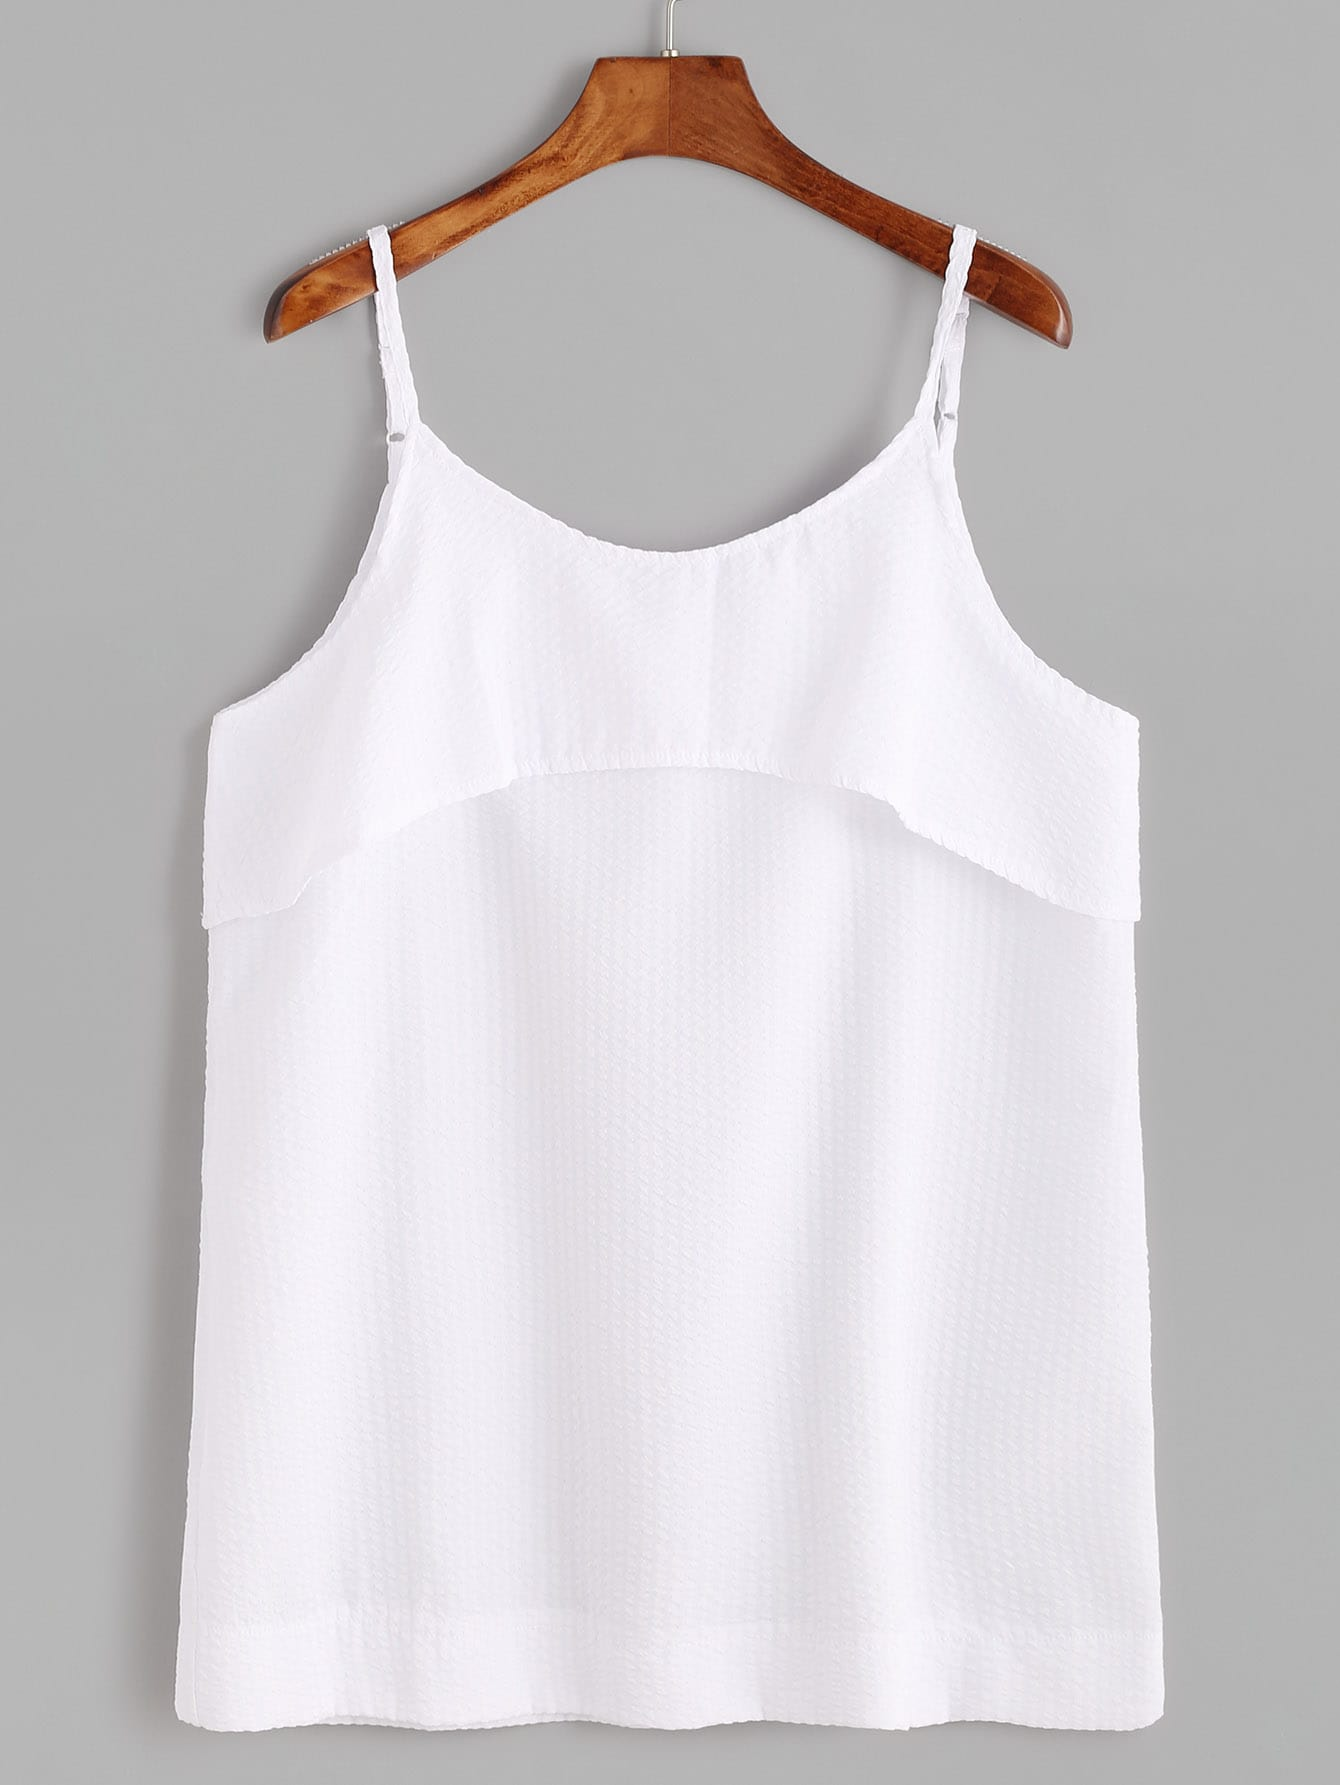 White Spaghetti Strap Layered Cami Top vest170105136